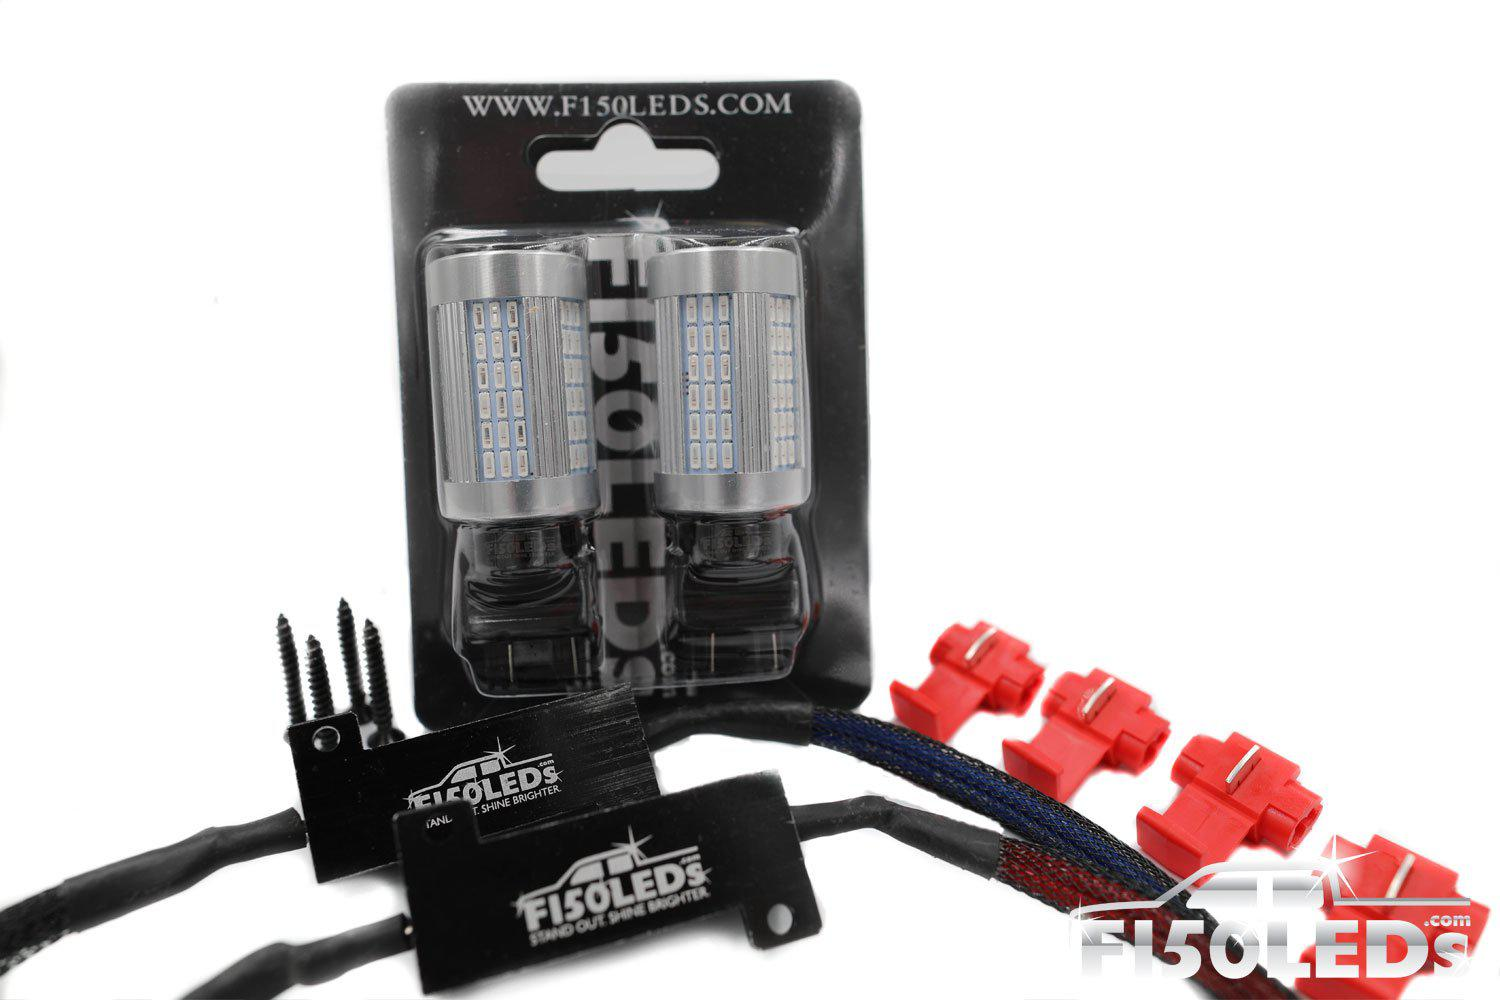 2010-14 F150 RAPTOR CREE LED FRONT TURN SIGNAL KIT-2010-14 F150 RAPTOR LEDS-F150LEDs.com